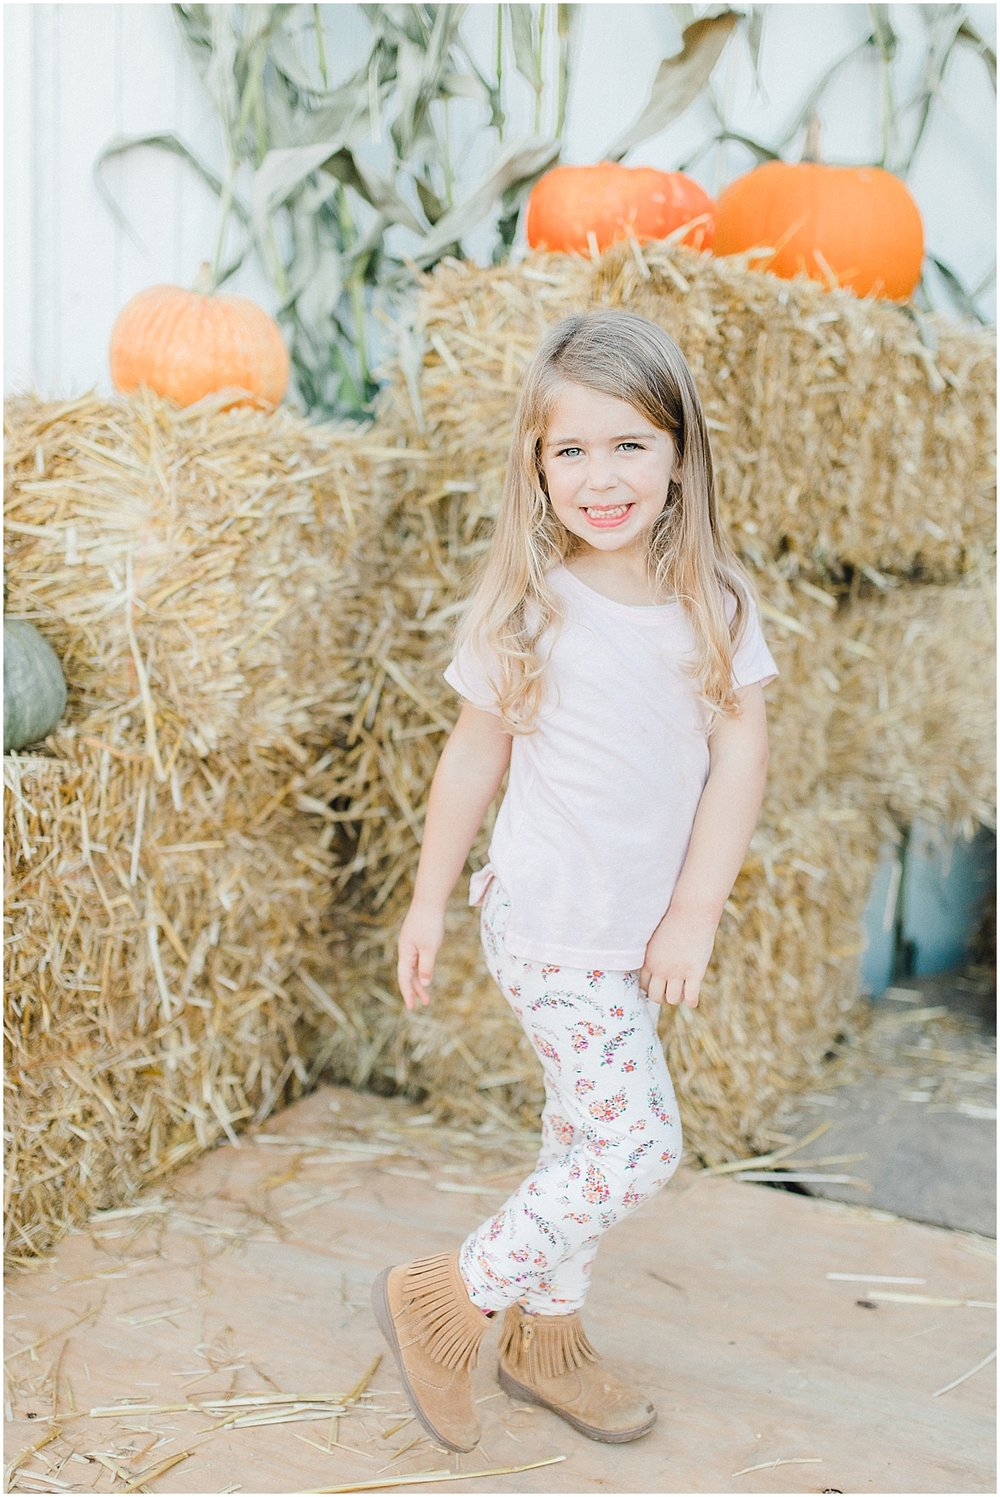 Pumpkin Patch Photo Shoot With Toddler and Mommy | Emma Rose Company Seattle Portland Light and Airy Wedding Photographer | Kindred Presets | Film_0001.jpg